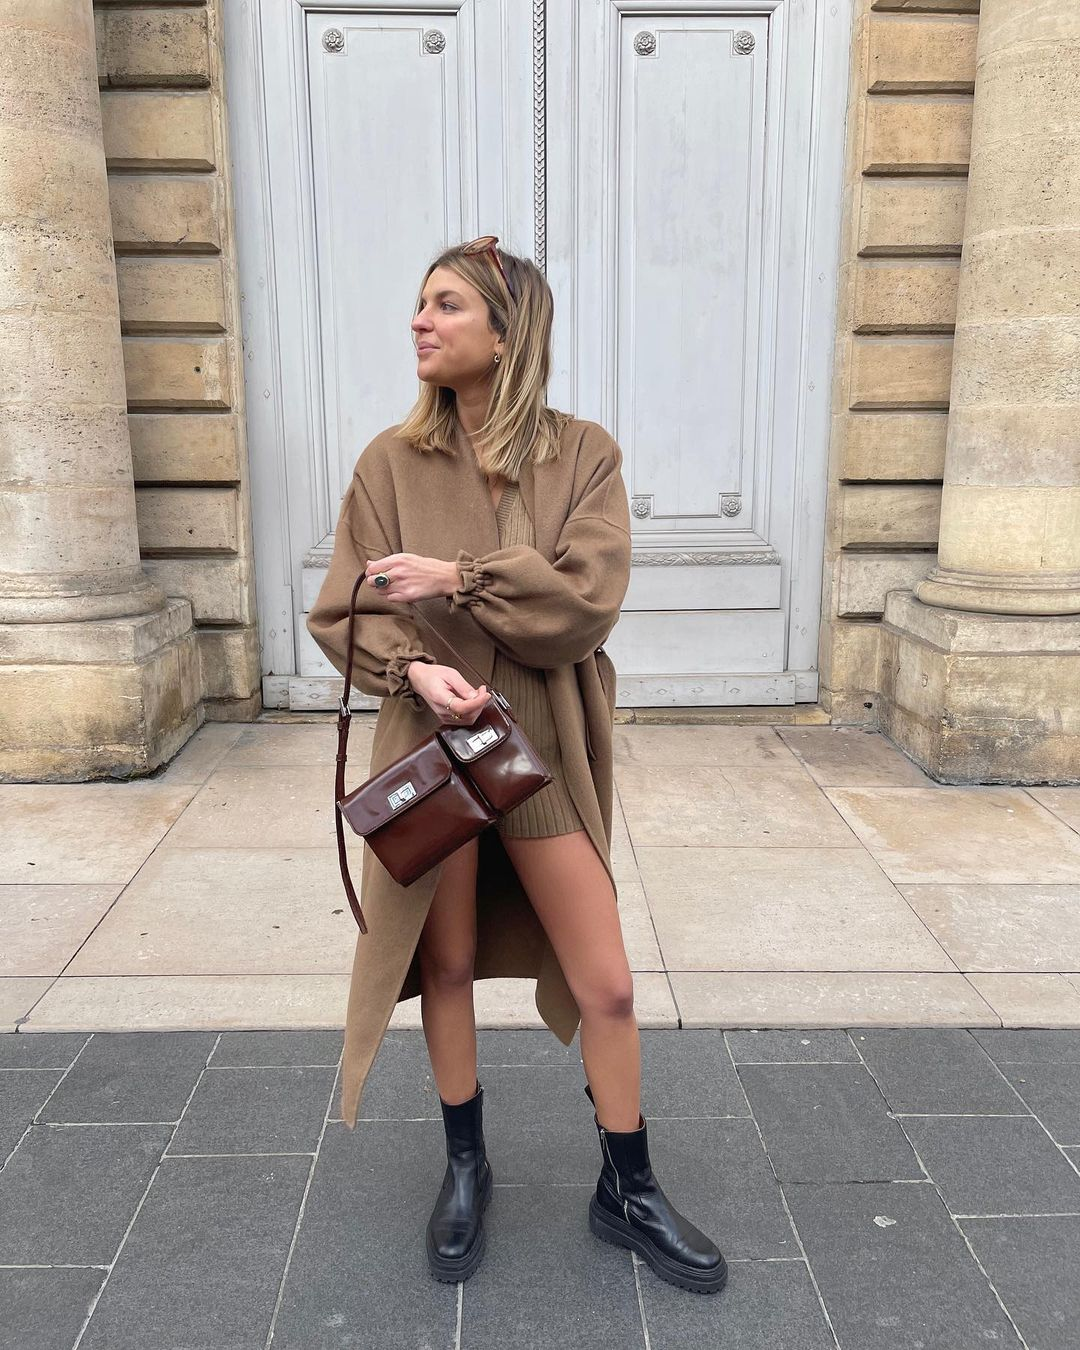 audrey-afonso-by-far-billy-glossed-leather-shoulder-bag-instagram